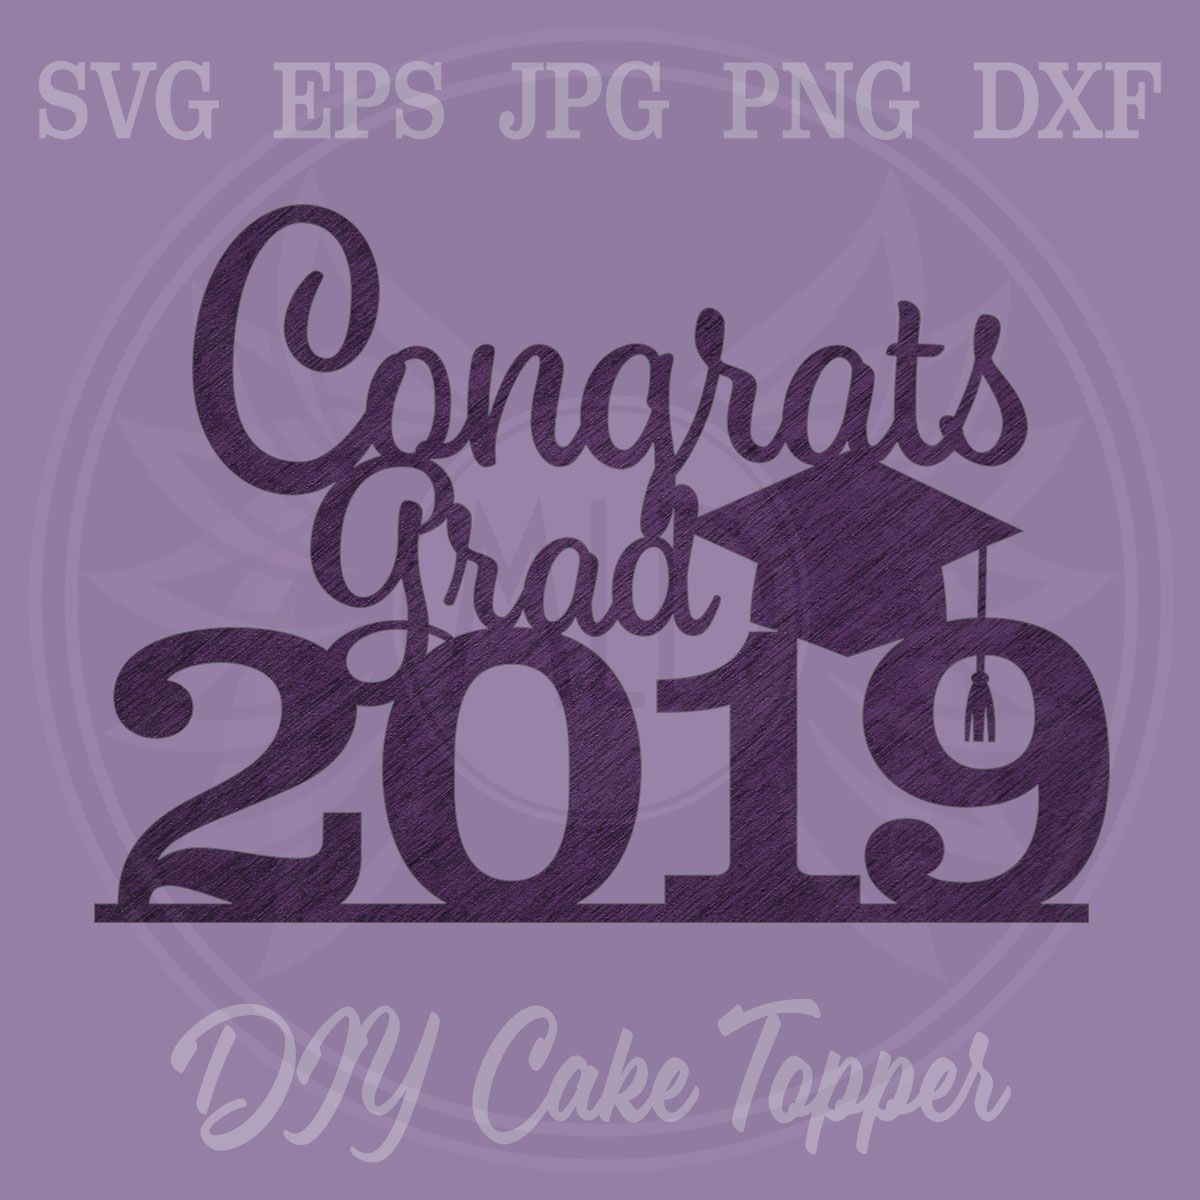 Pin on SVG Files for Cake Toppers